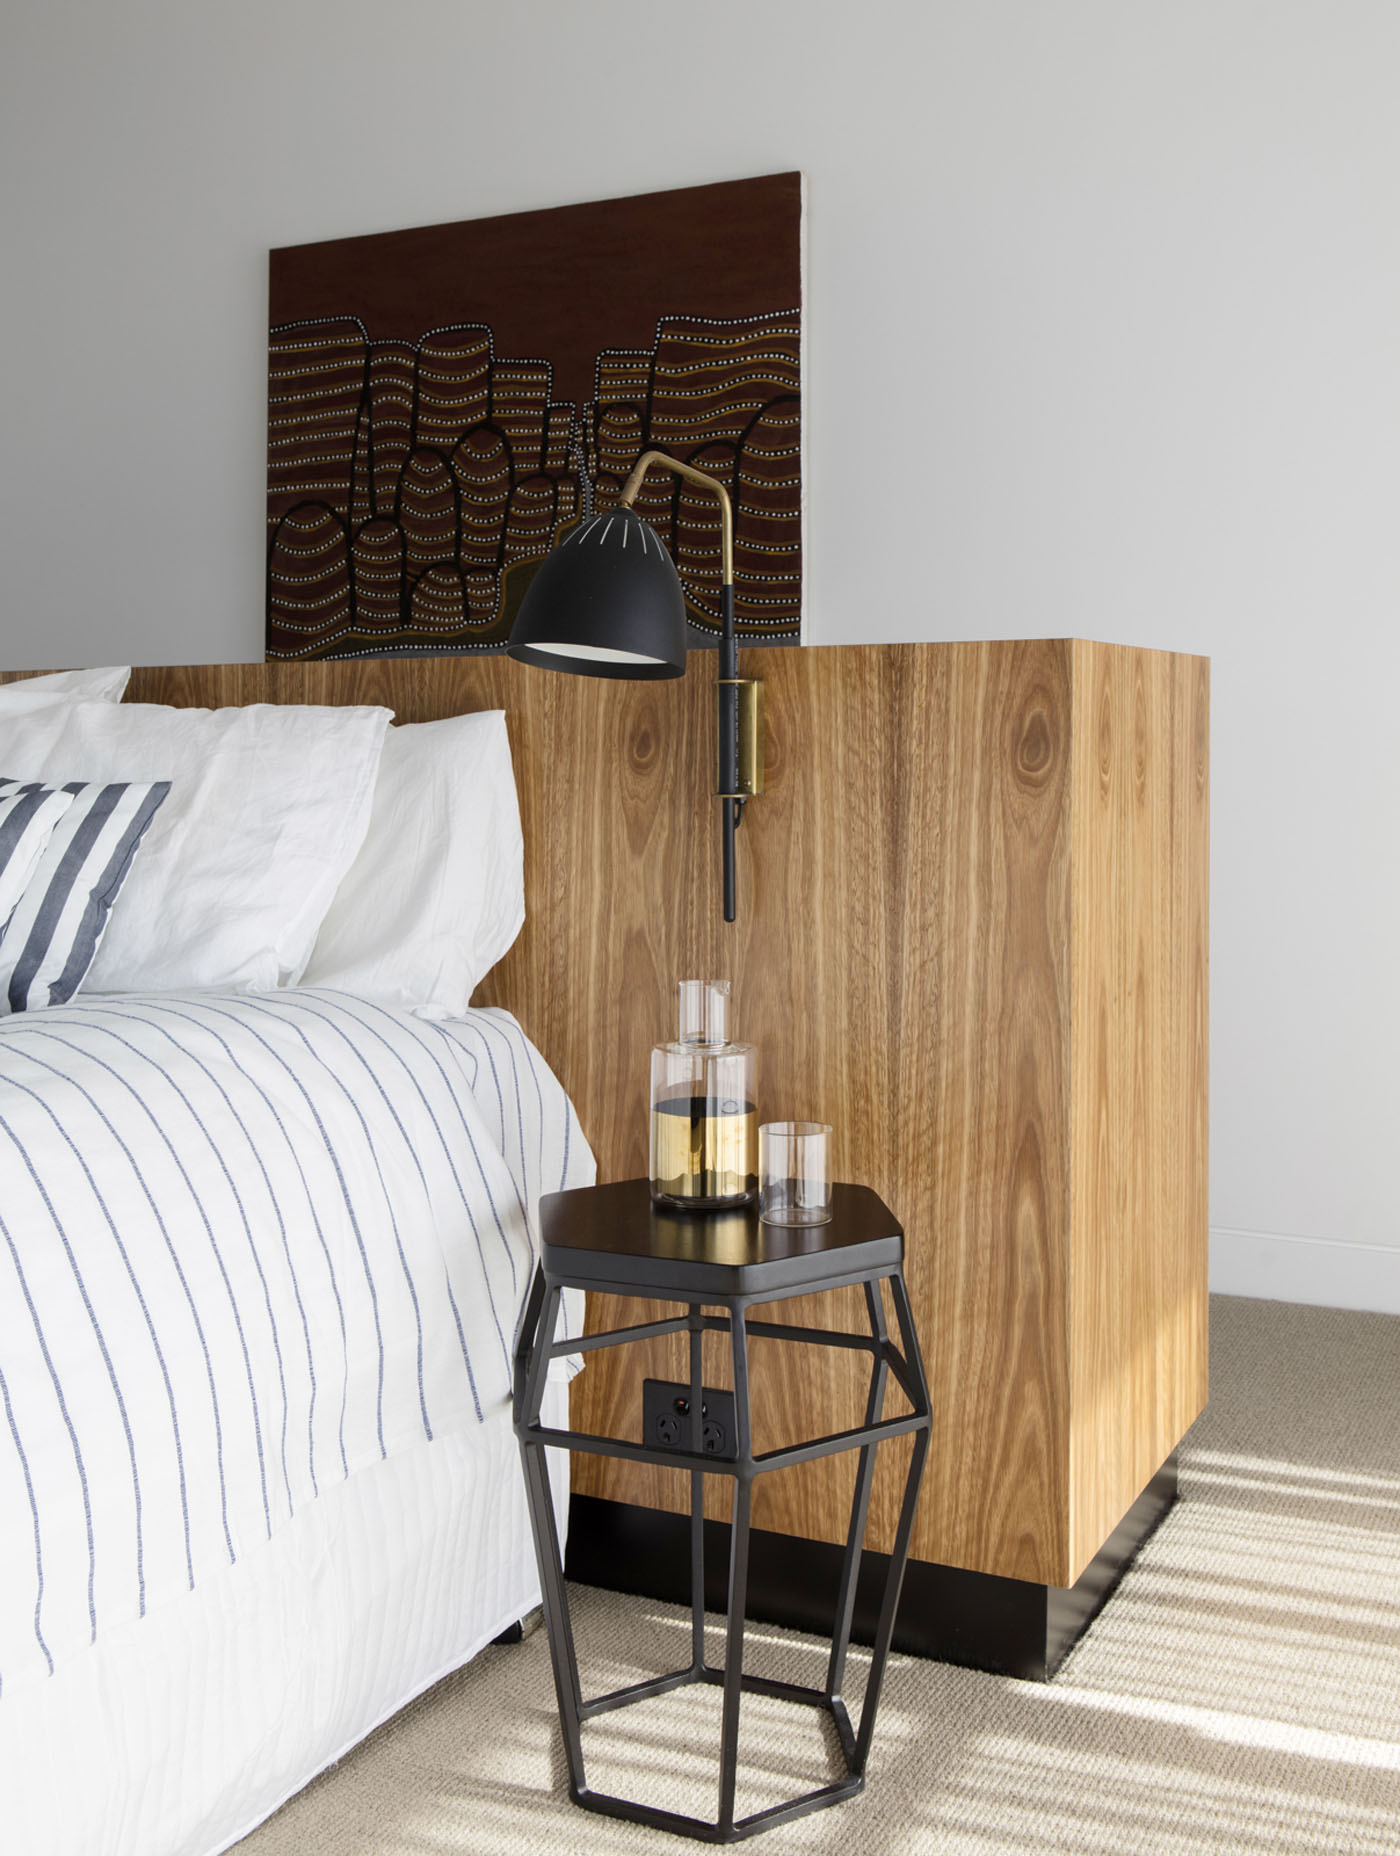 Conway Atkins House in Dover Heights by Sydney architect Sam Crawford Architect. A low joinery piece forms a bed head whilst providing much needed storage.